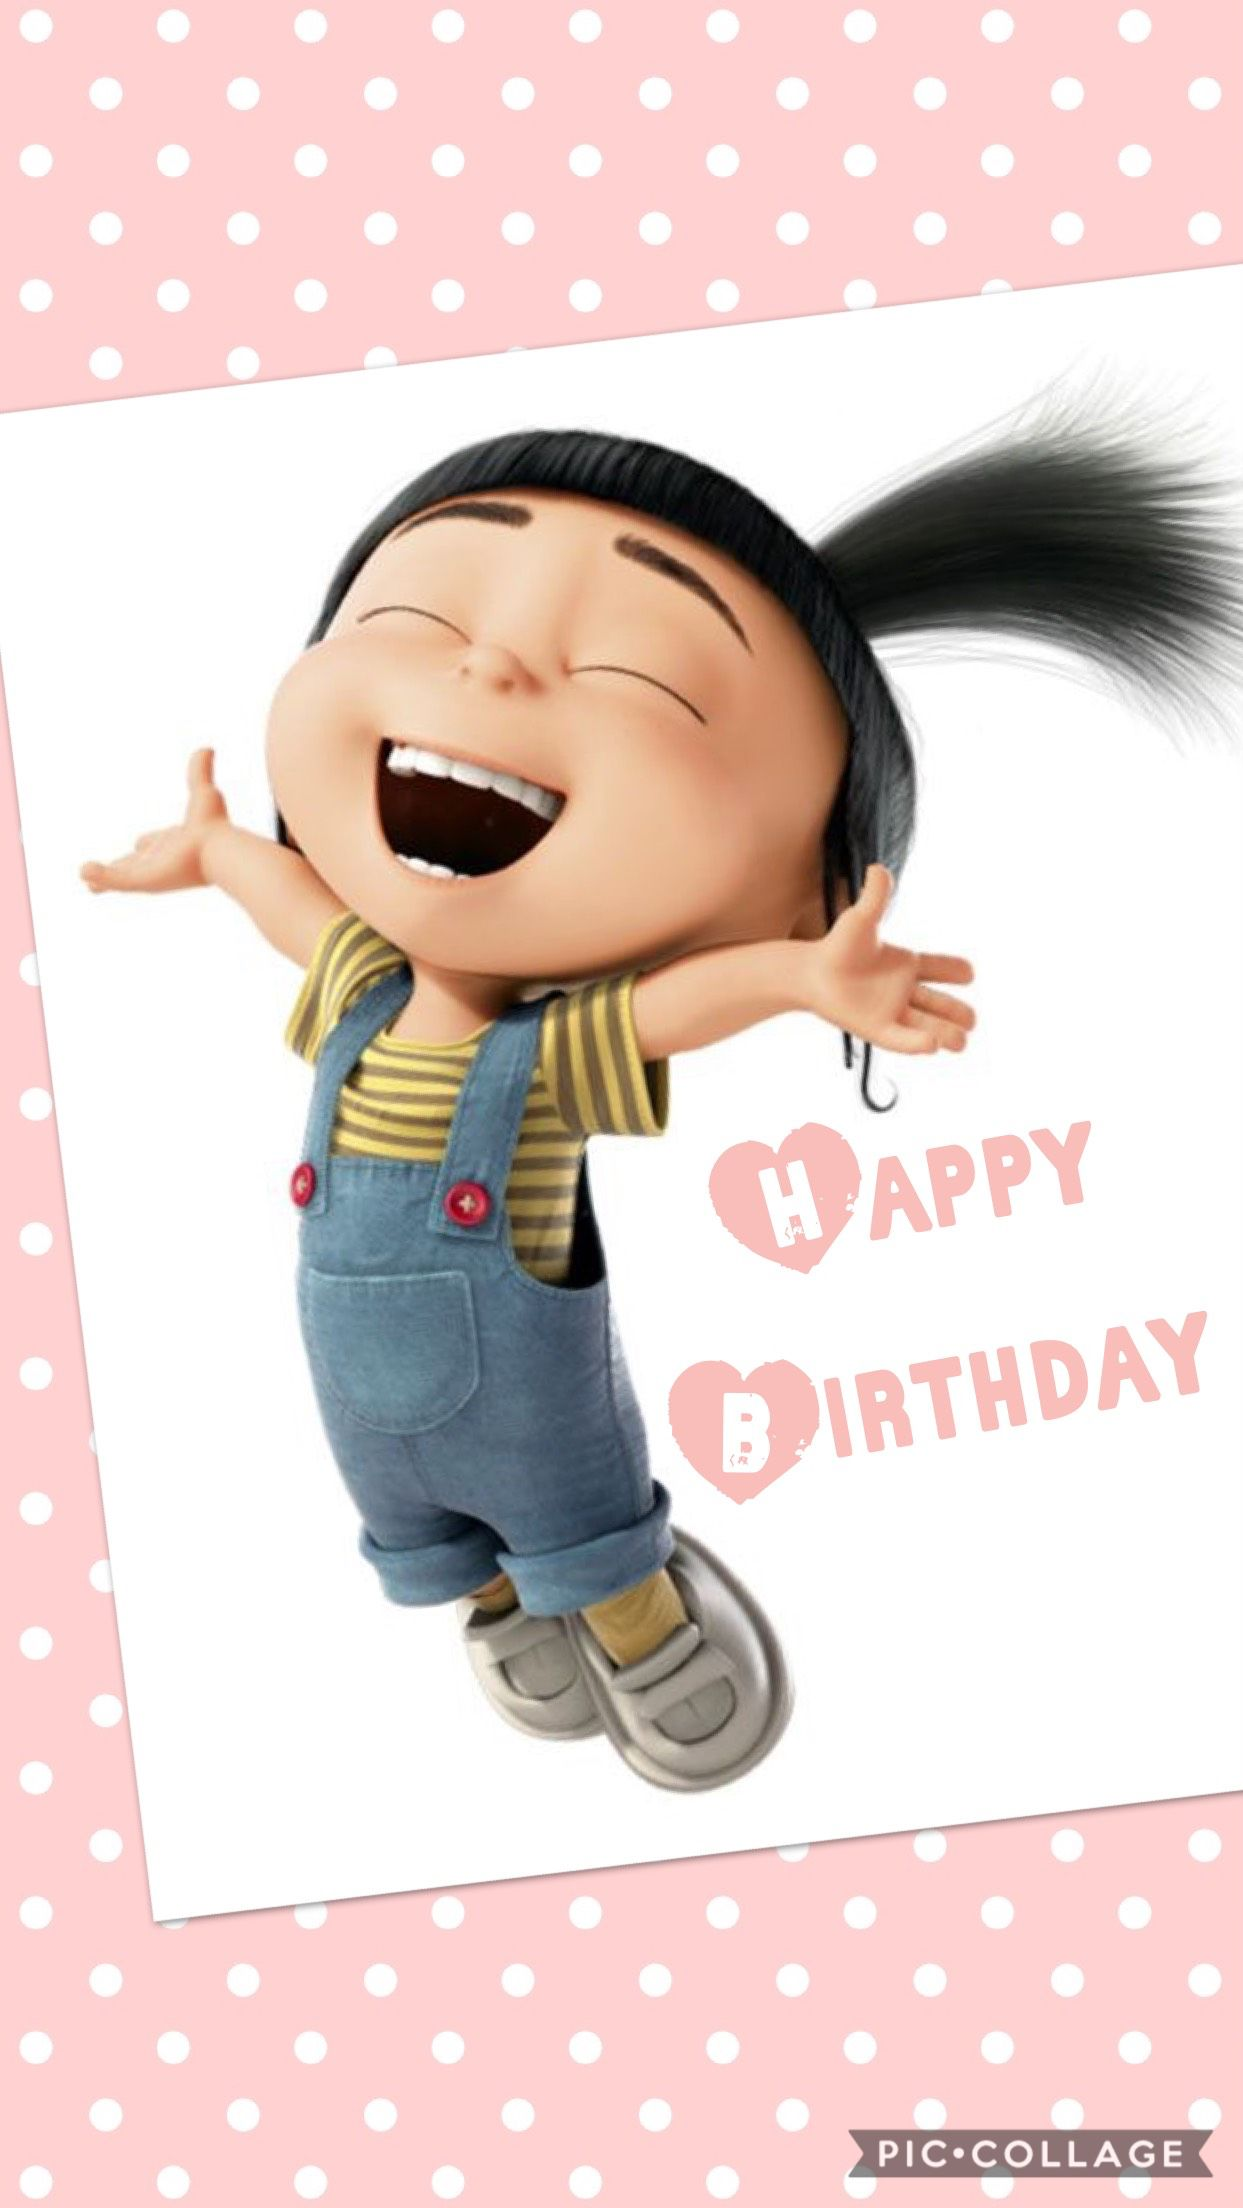 Despicable me birthday card pinterest birthdays despicable me birthday card bookmarktalkfo Gallery